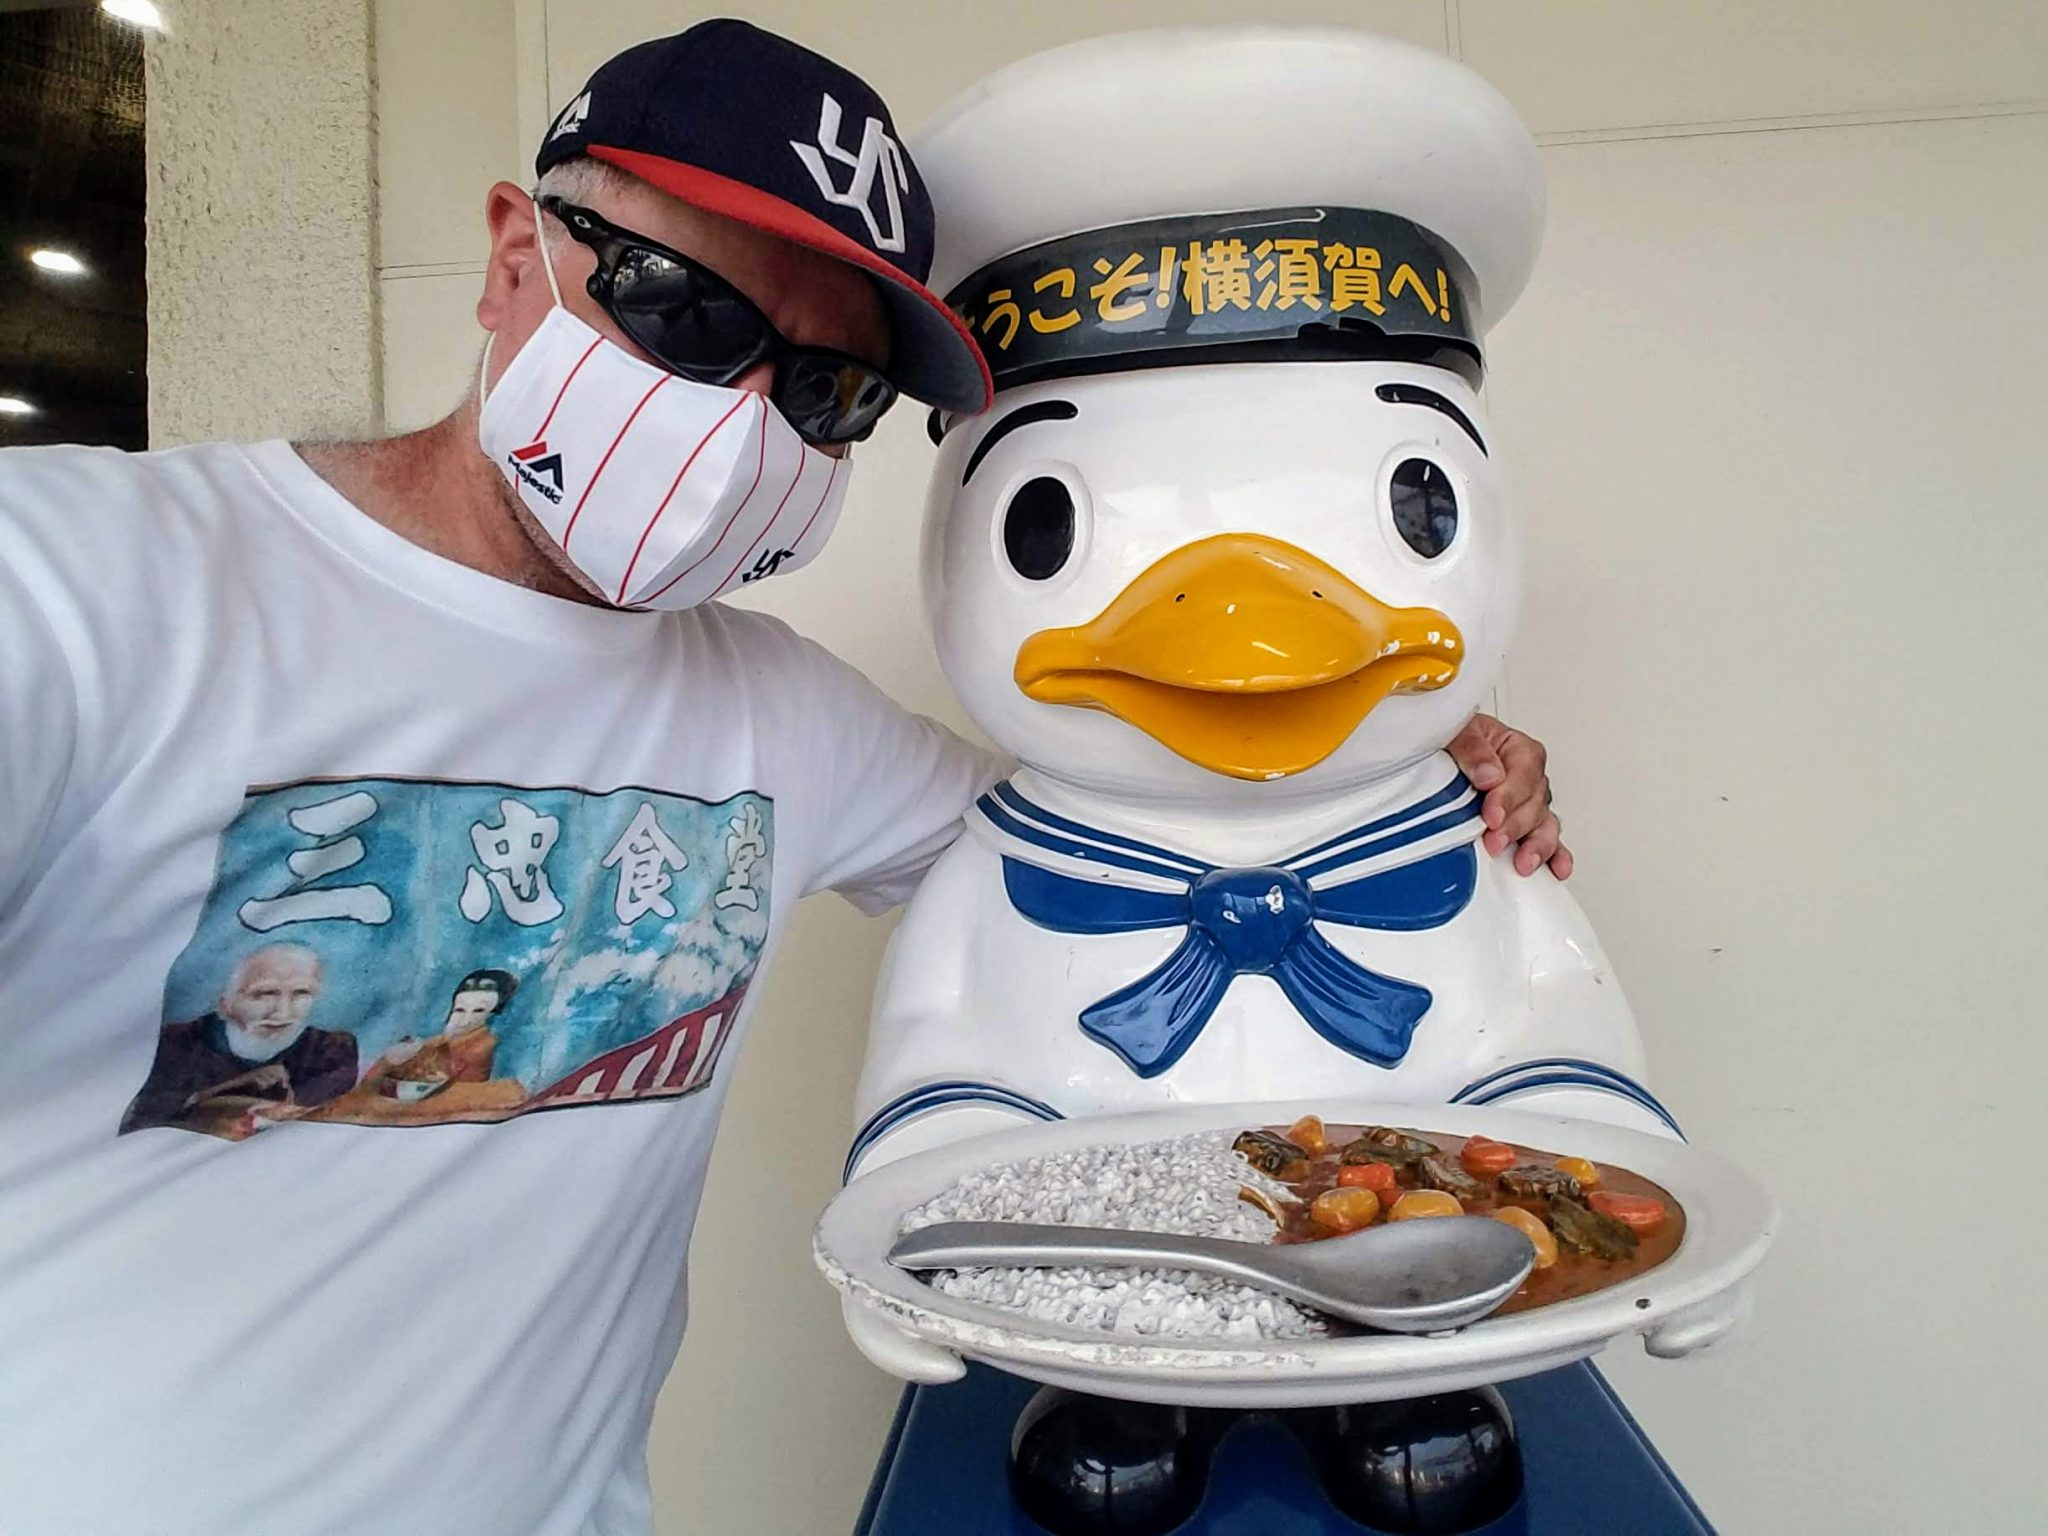 Sucurry (スカレー), mascot of Yokosuka with Mac, Founder and Lead Guide of Maction Planet